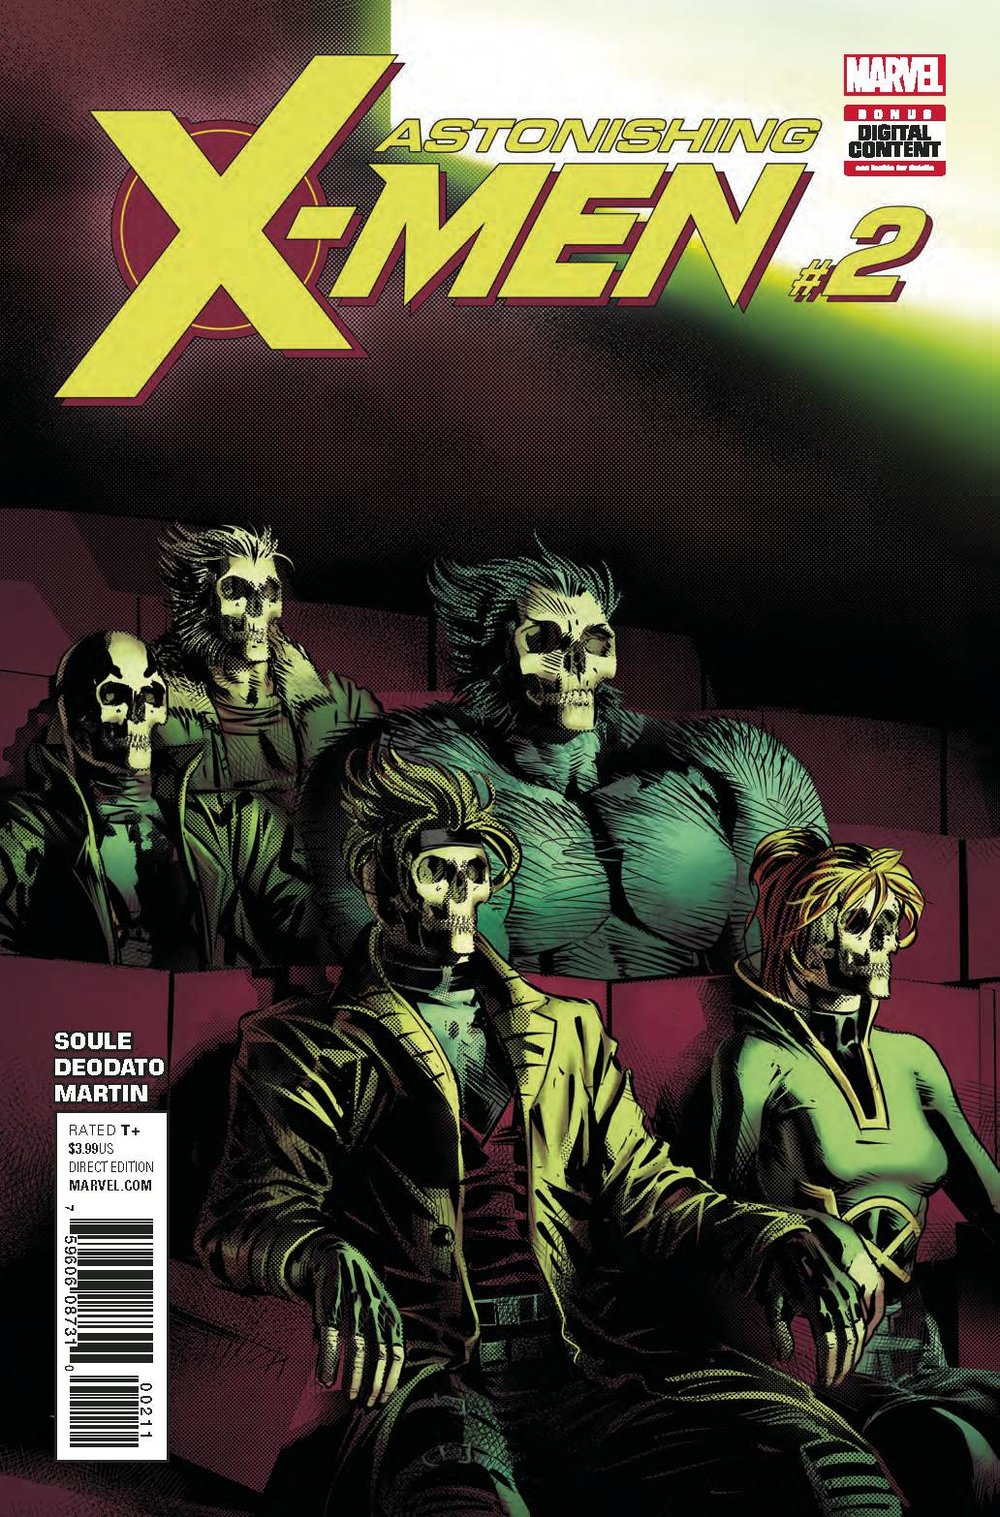 ASTONISHING X-MEN 2.jpg